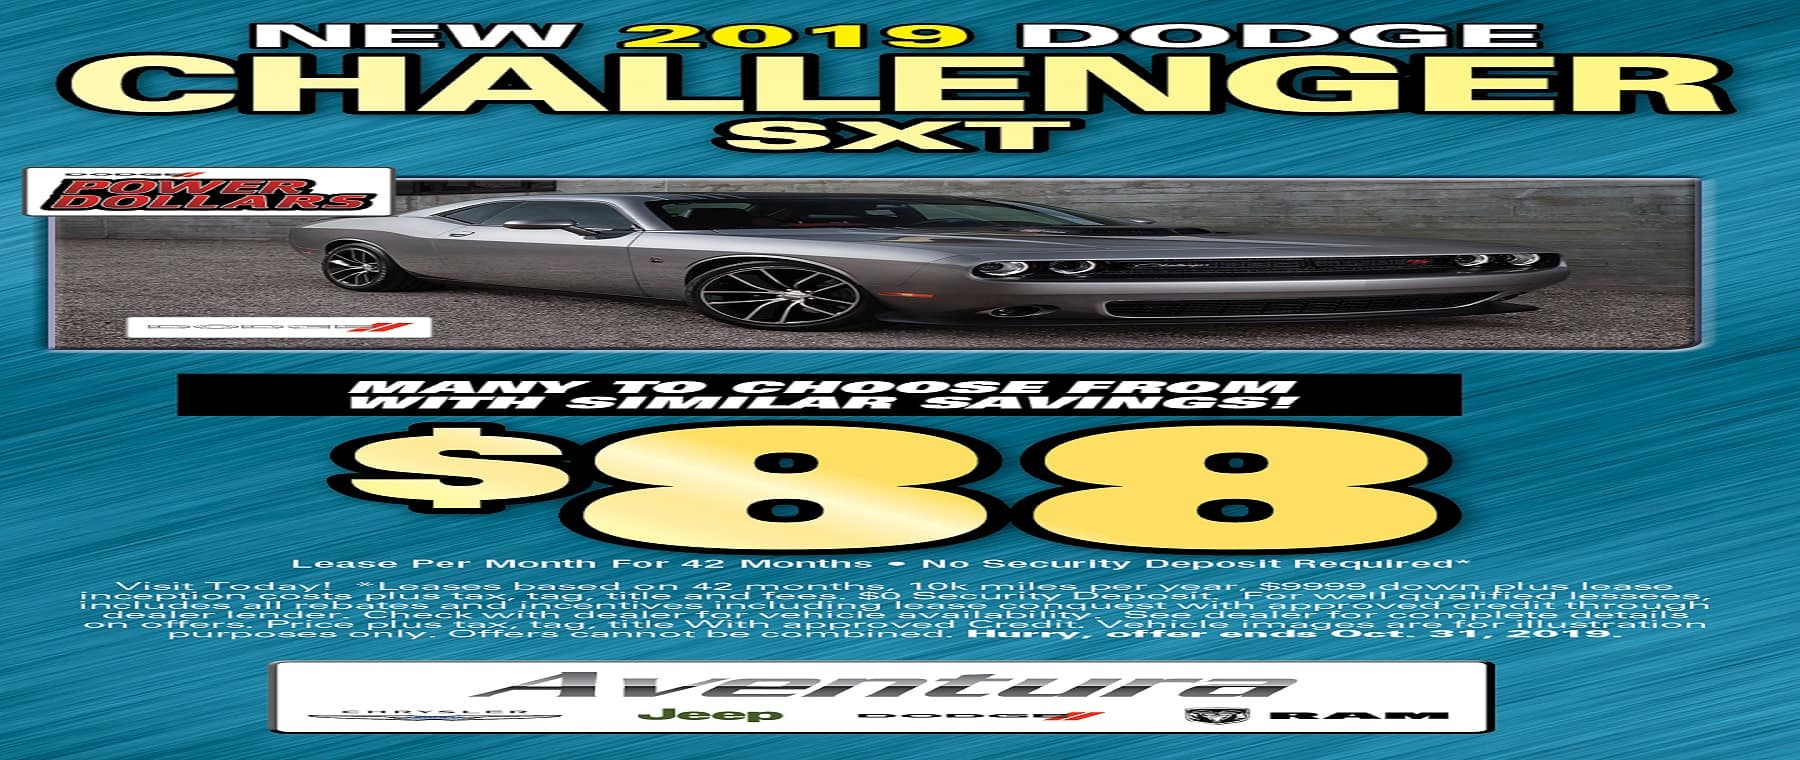 Challenger $88 Lease